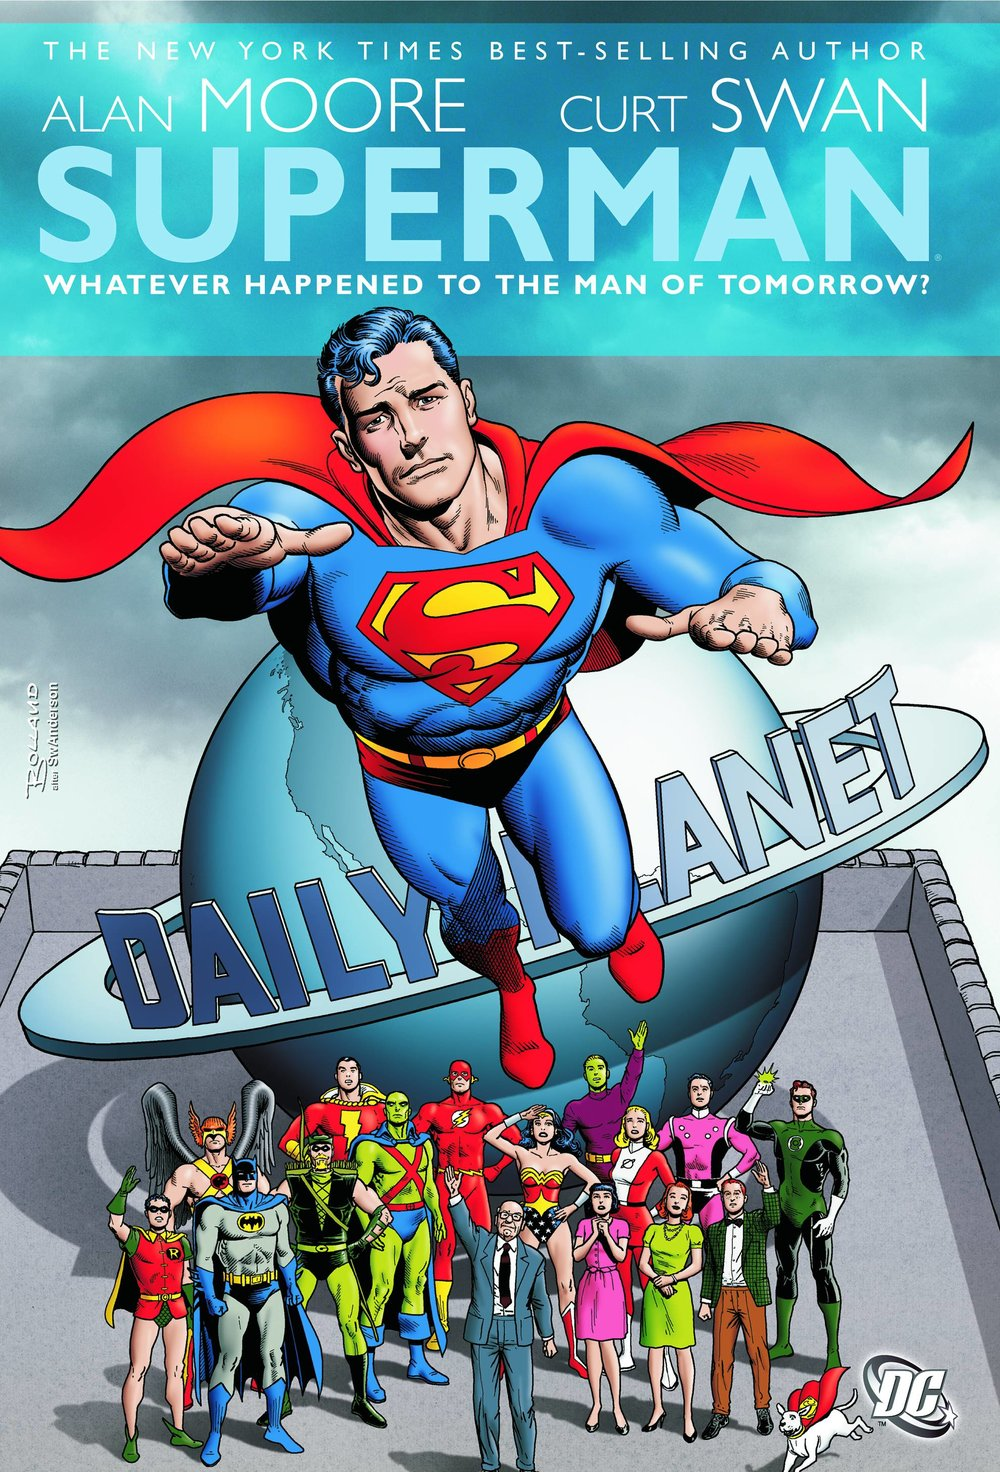 Superman: Whatever Happened to the Man of Tomorrow? - Mike's Pick (#2)In the mid '80s, DC enacted their first continuity reboot with the classic maxi series, Crisis on Infinite Earths.  Since they would be effectively starting their whole line over with a new beginning, it provided an opportunity for endings as well.  This is rare for traditional superhero comics as they're designed to go on indefinitely.  The honor of providing an end for the first superhero, the inspiration for all the legions that would follow, fell to the peerless Alan Moore (Watchmen) and the man that many would describe as the perfect Superman artist, Curt Swan (Action Comics).  Evoking a bygone era while still retaining a contemporary approach, Moore and Swan create a truly bittersweet and heartfelt salute to a Superman that would soon be obsolete.  Crafting satisfying resolutions to decades long storylines and relationships was a monumental task, but they make it look easy.  In our era of decompressed storylines, it's even more amazing that it only lasts two issues.  I'm not the biggest Superman fan, but this tale of his last battle has remained one of my favorite stories since its debut.  It deserves a spot on any superhero fan's shelf.  It's available now as part of the DC Universe by Alan Moore TPB.